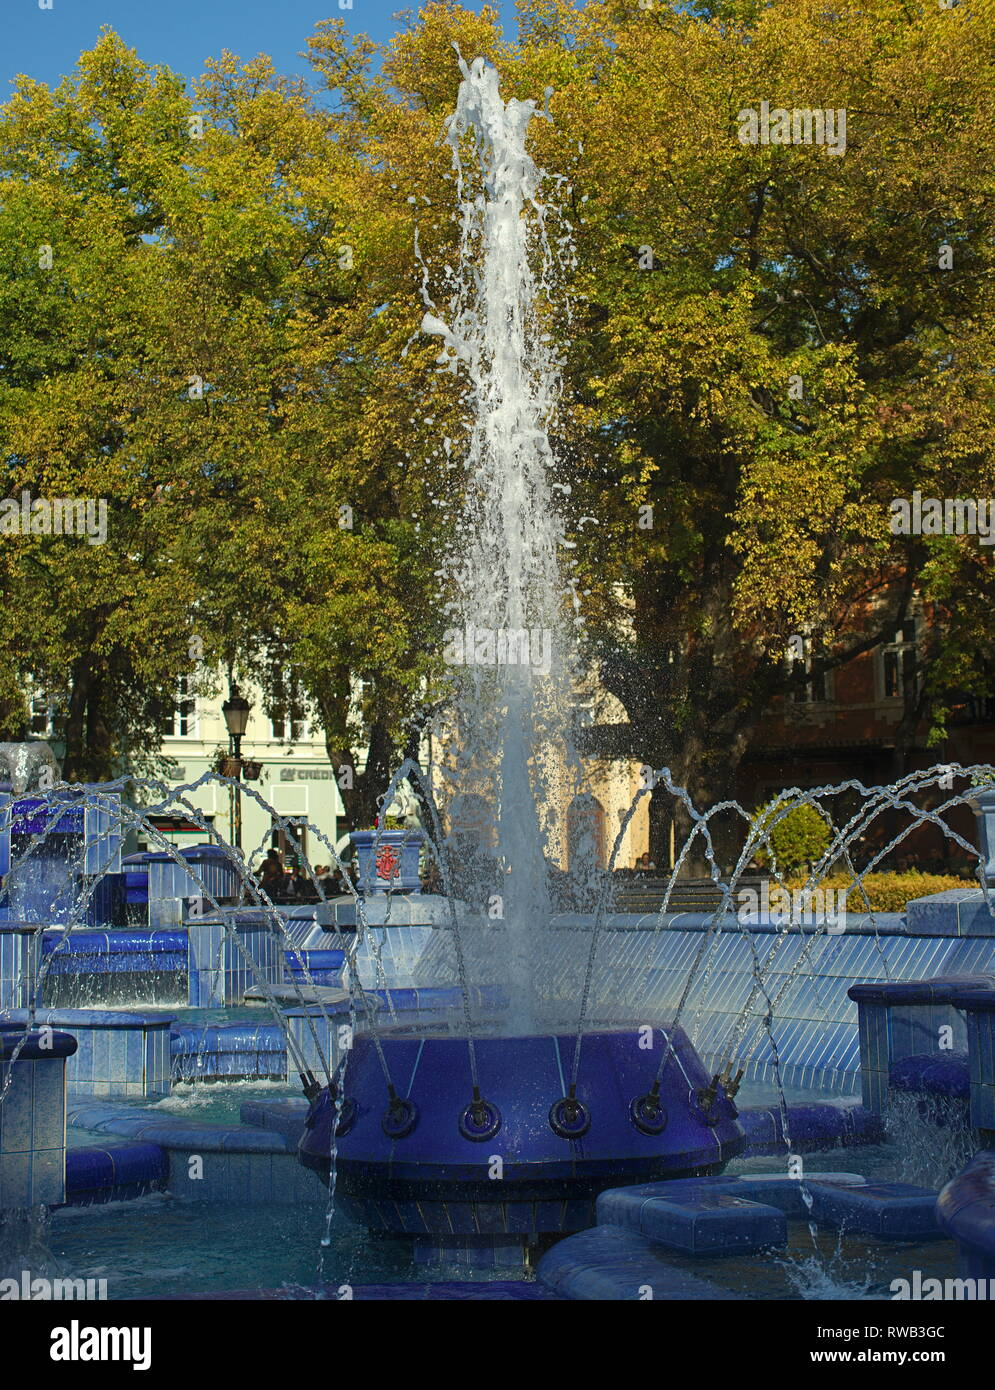 Fountain made of blue marble with water splashing around - Stock Image